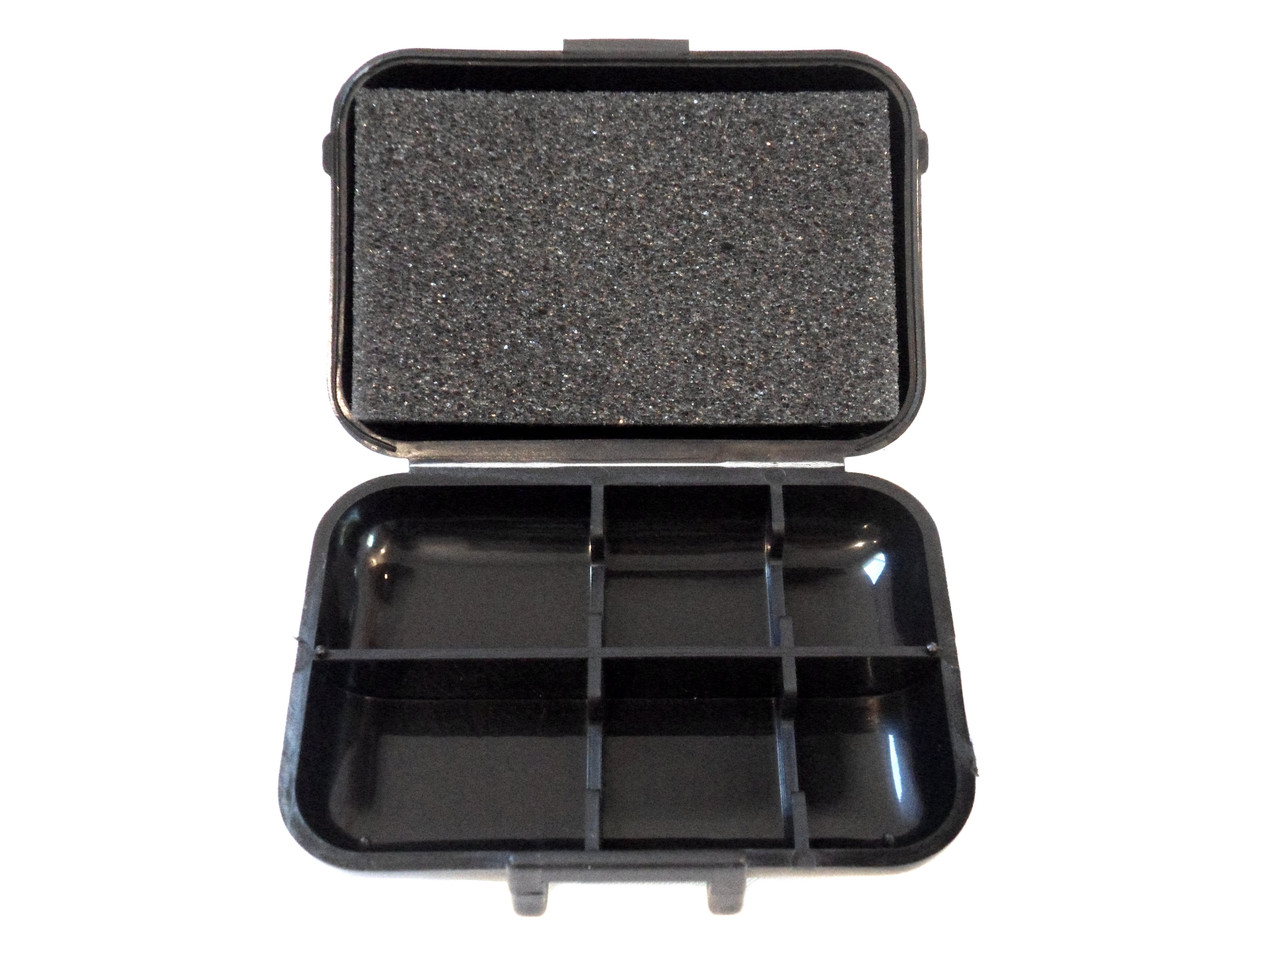 SPI Spark Plug Caddy - Black